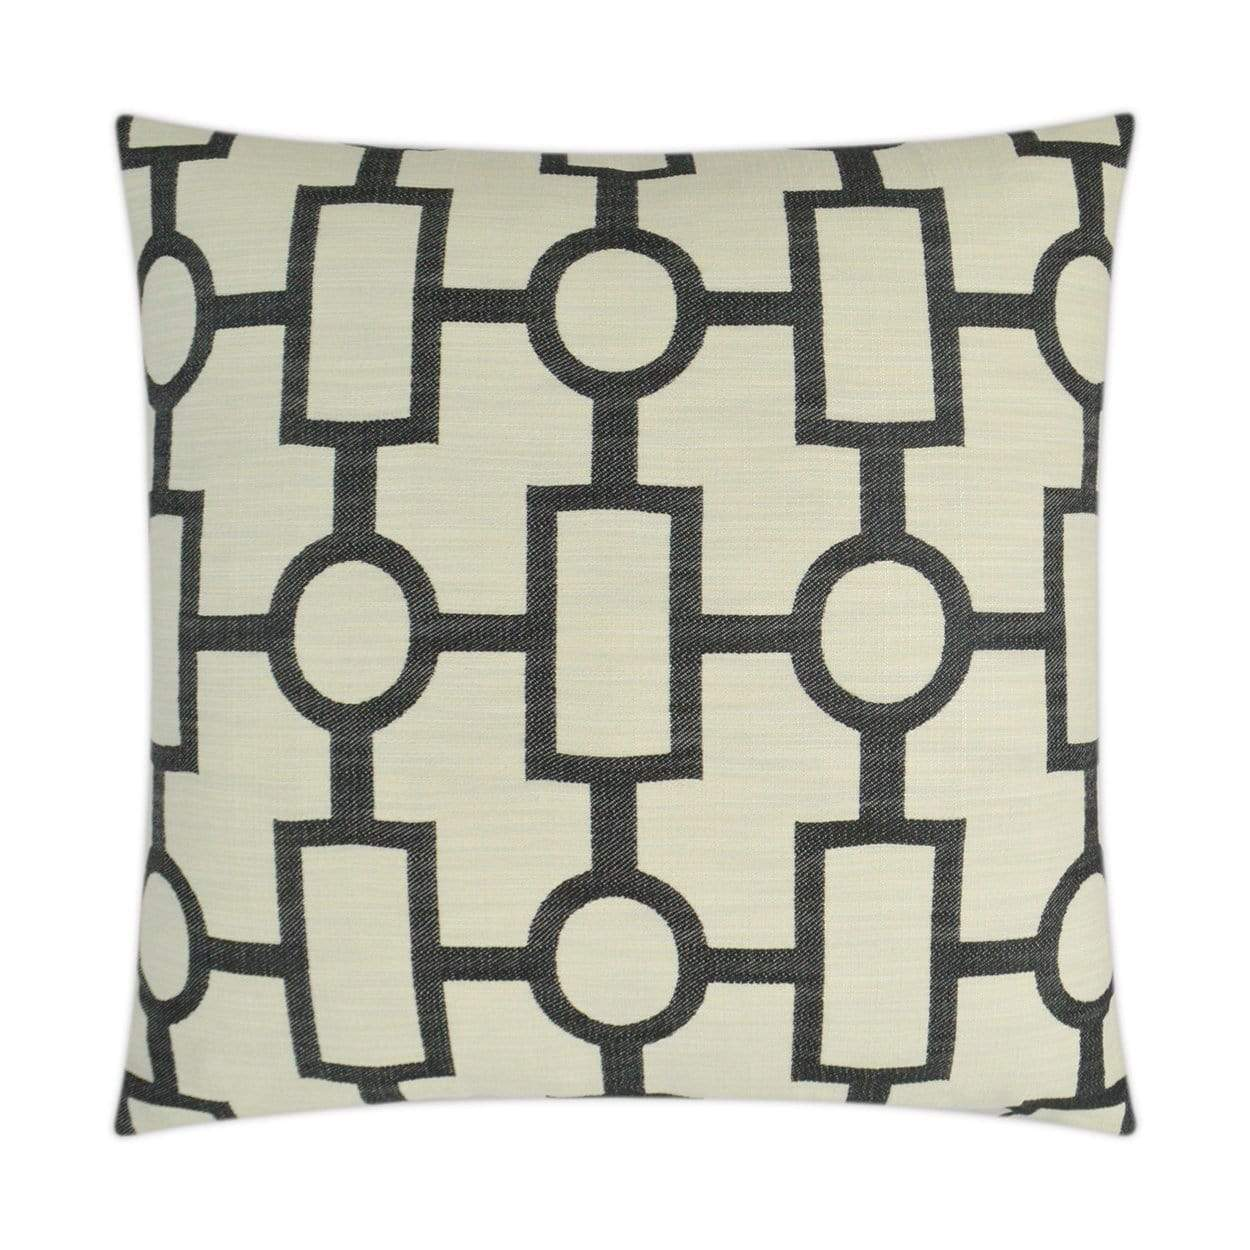 D.V. Kap D.V. Kap Ellington Pillow - Available in 4 Colors Black 3331-B